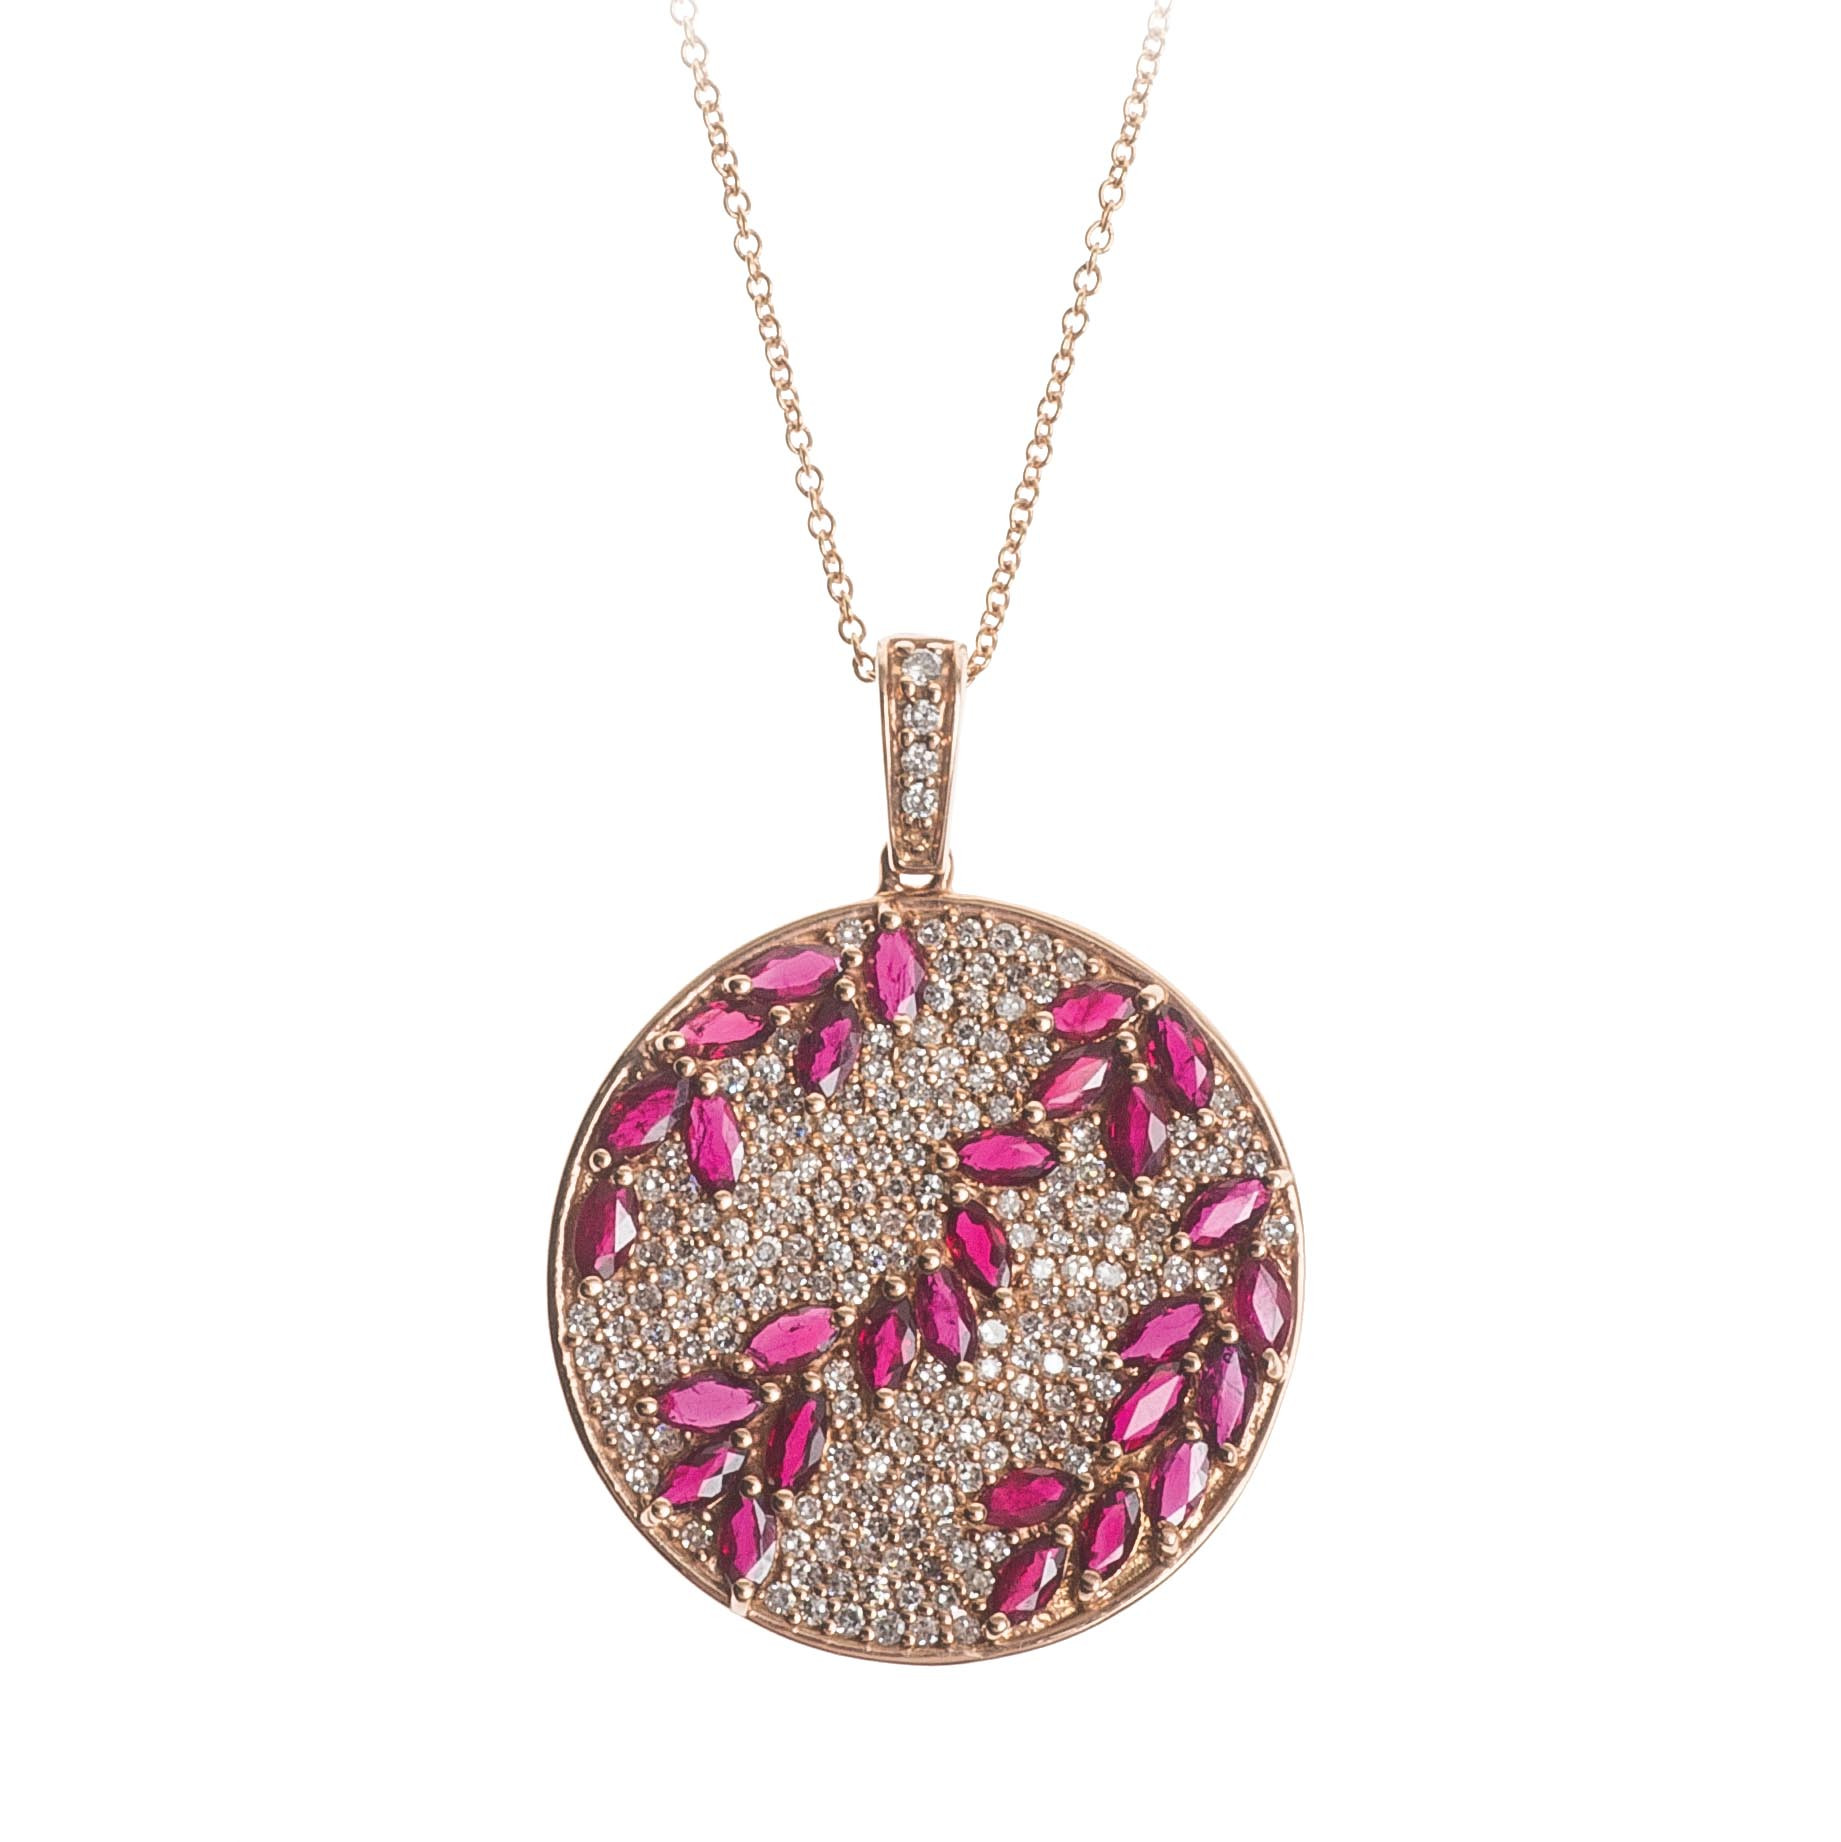 pendant diamond shaped j x with copy rose chain approx ruby i single and gold effy circle rosa set marquise gallery necklace cable vintage pave cut image ctw inch